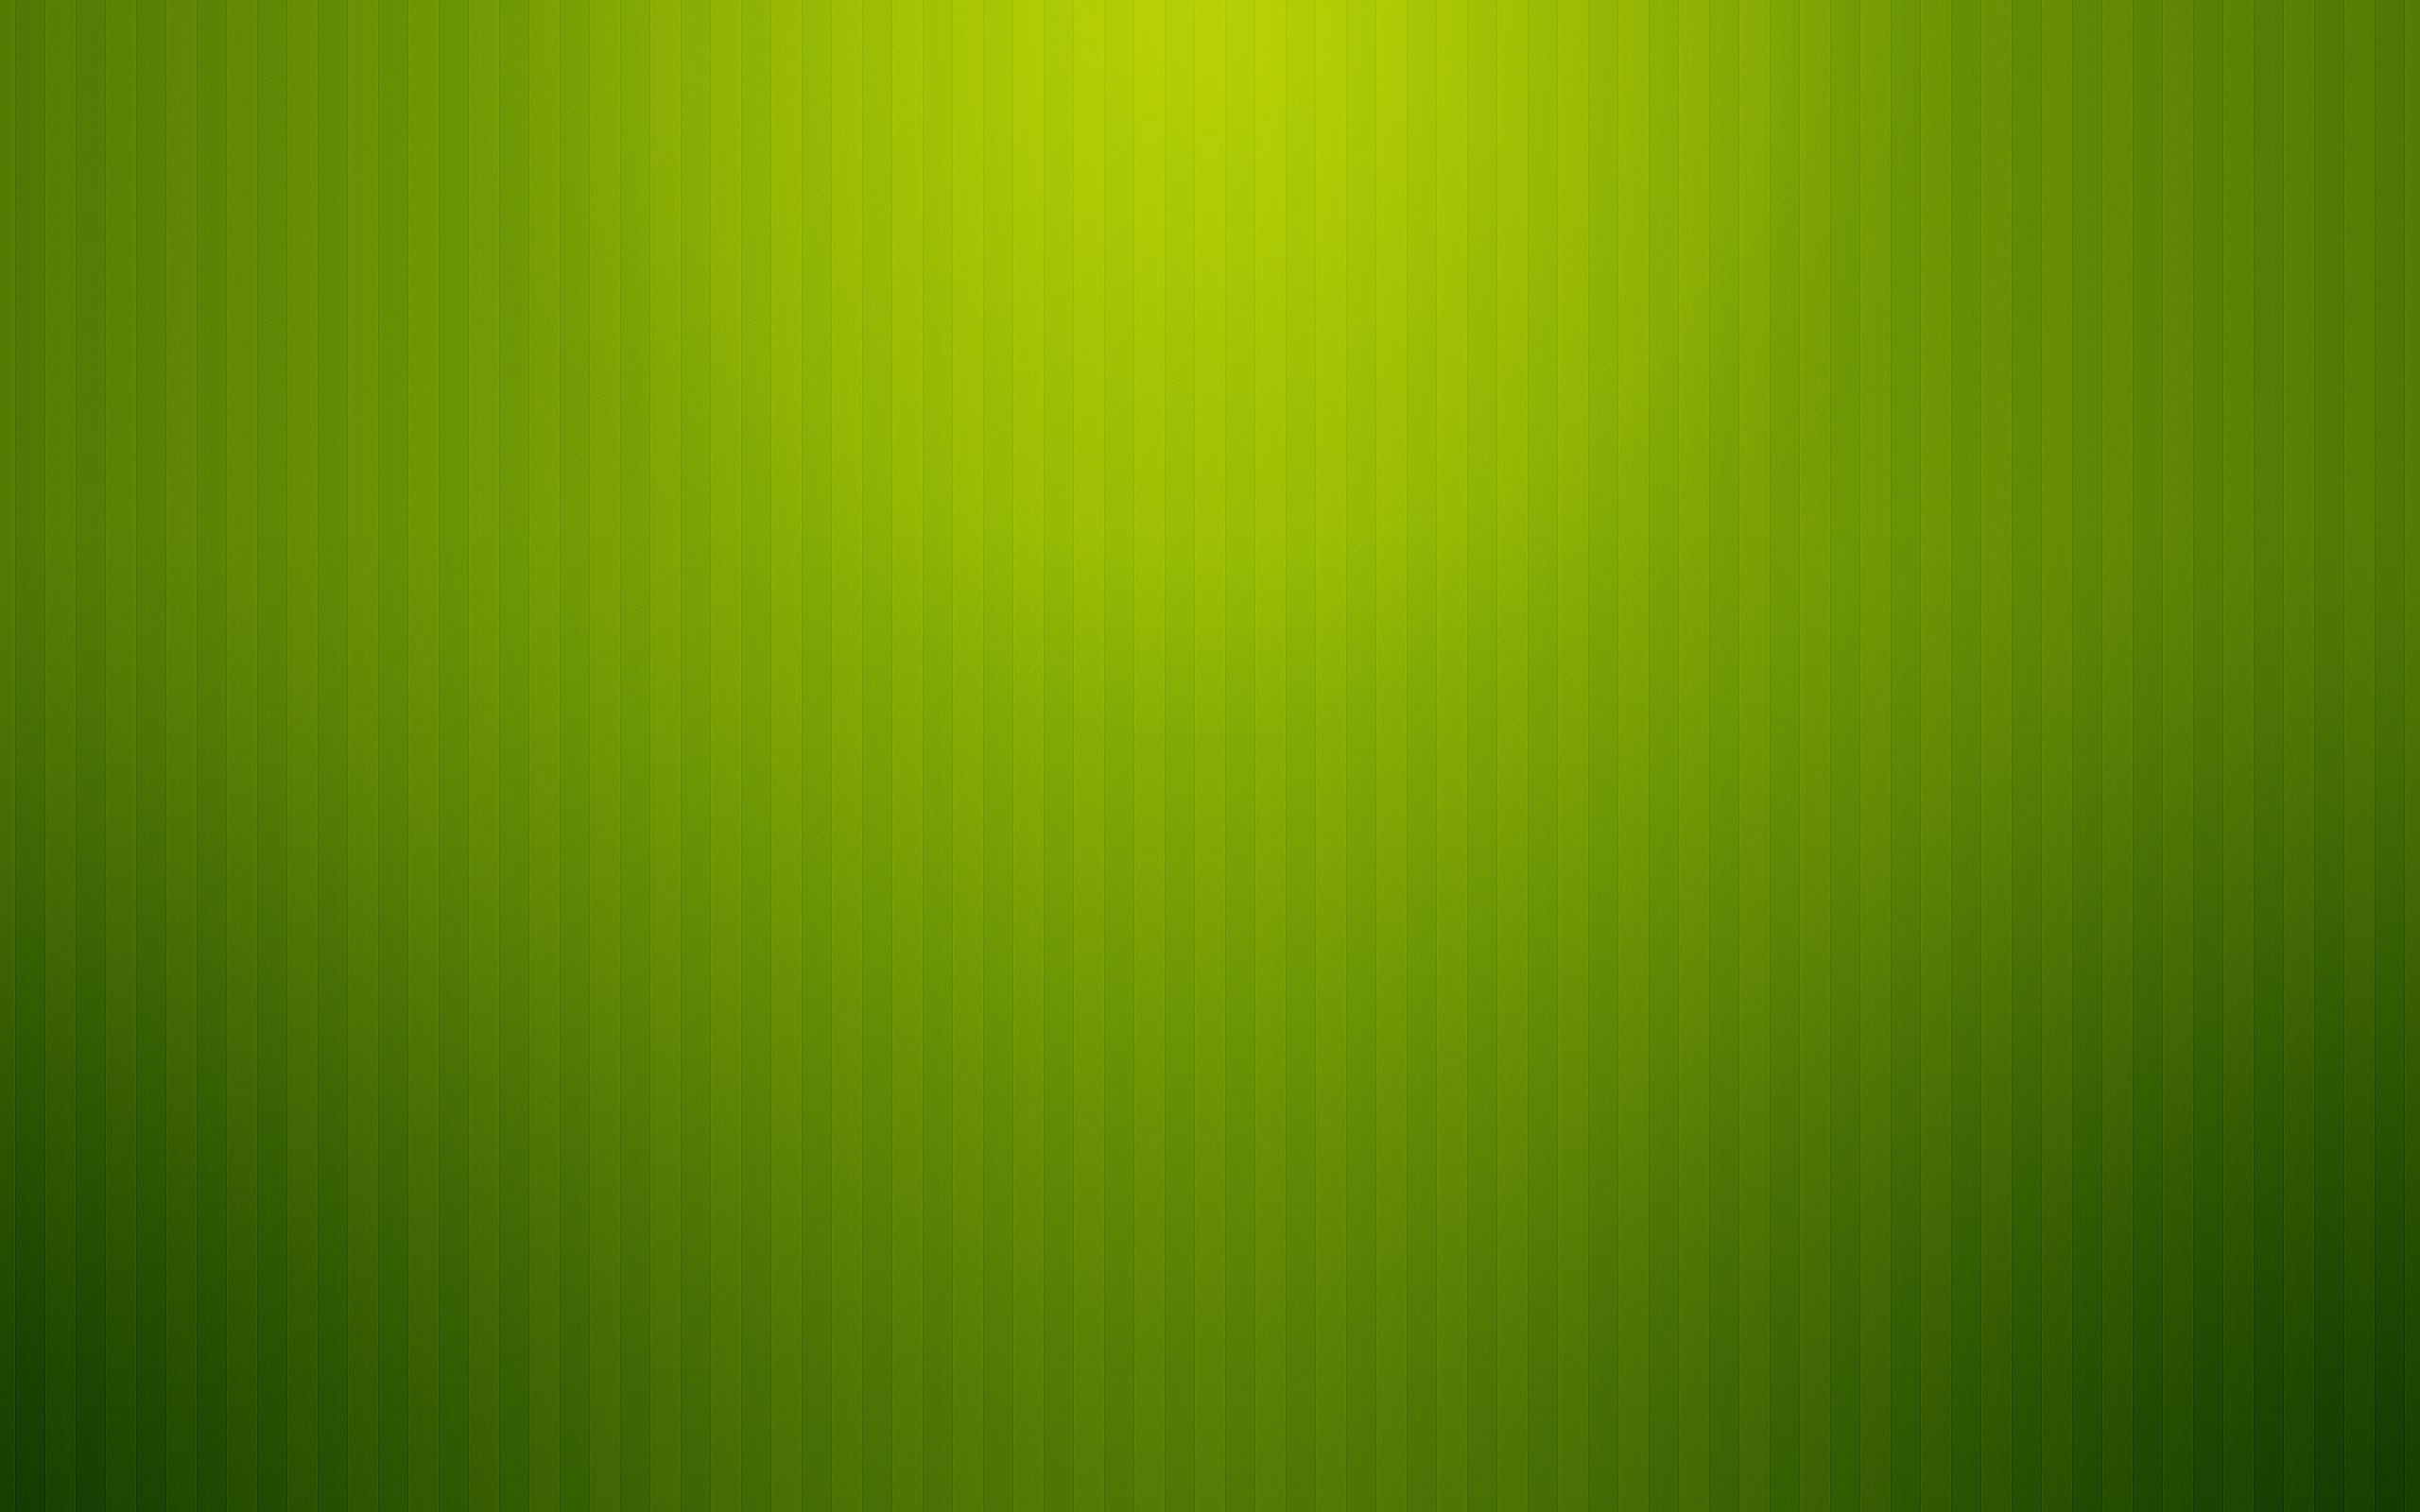 2560x1600 green light plain line background hd wallpapers cool images tablet smart  phones colourful desktop wallpapers mac desktop images samsung phone  wallpapers ...